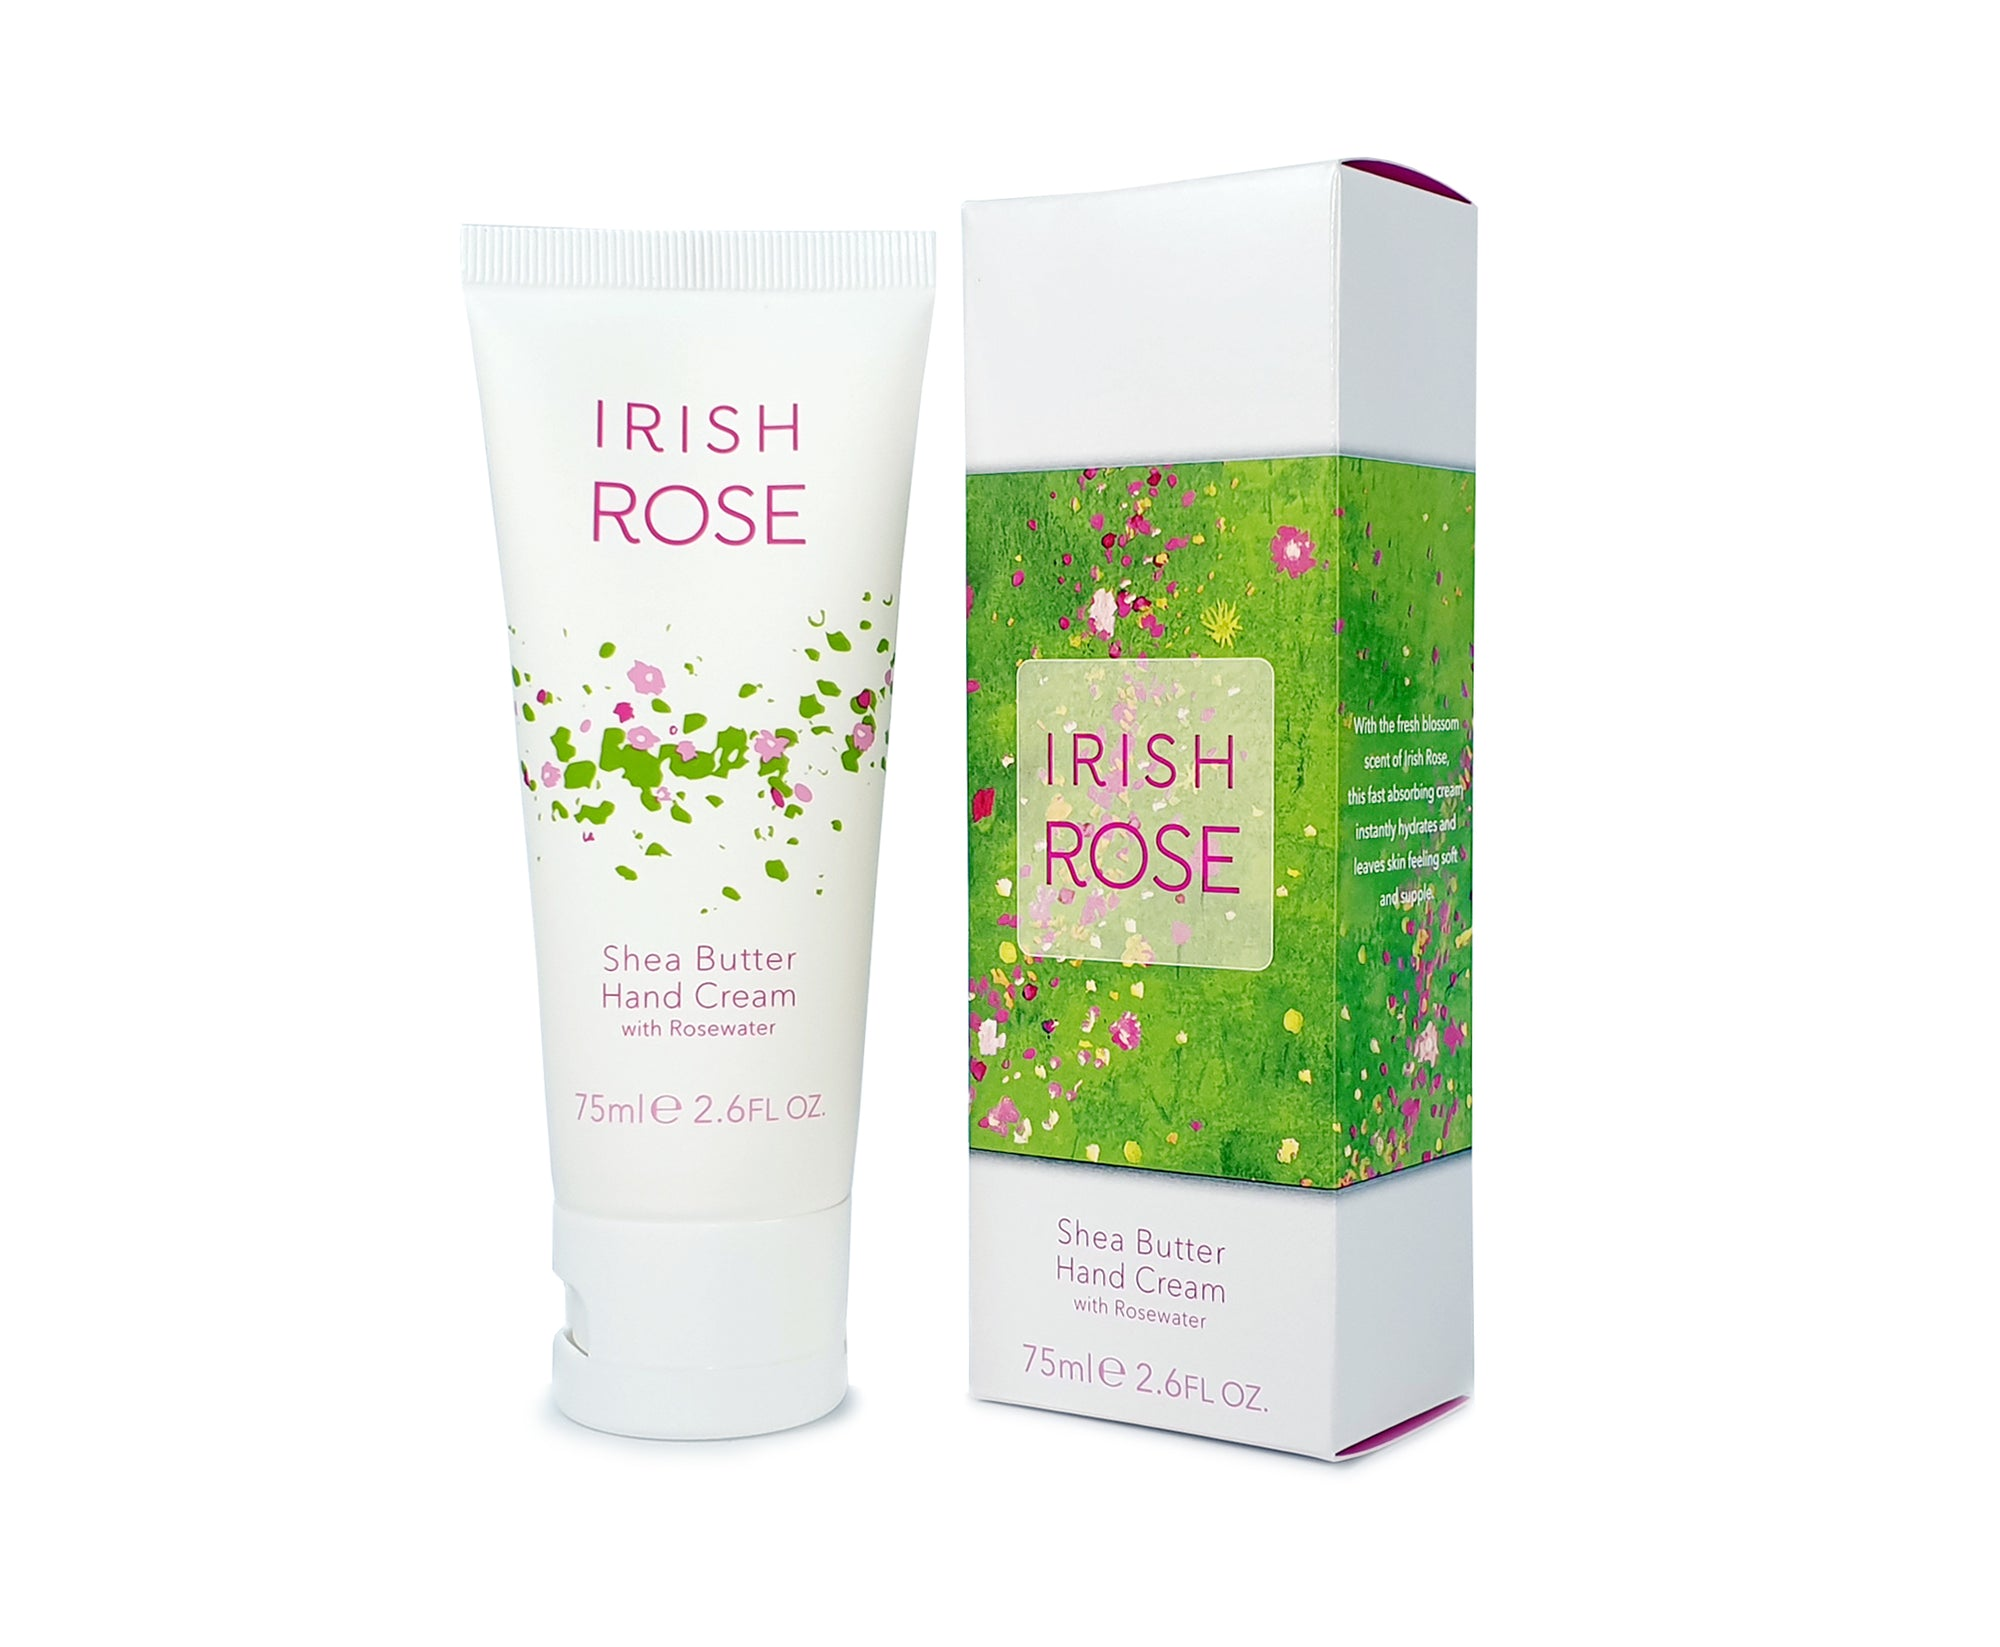 Irish Rose Shea Butter Hand Cream with Rosewater (75ml 2.6 fl oz)